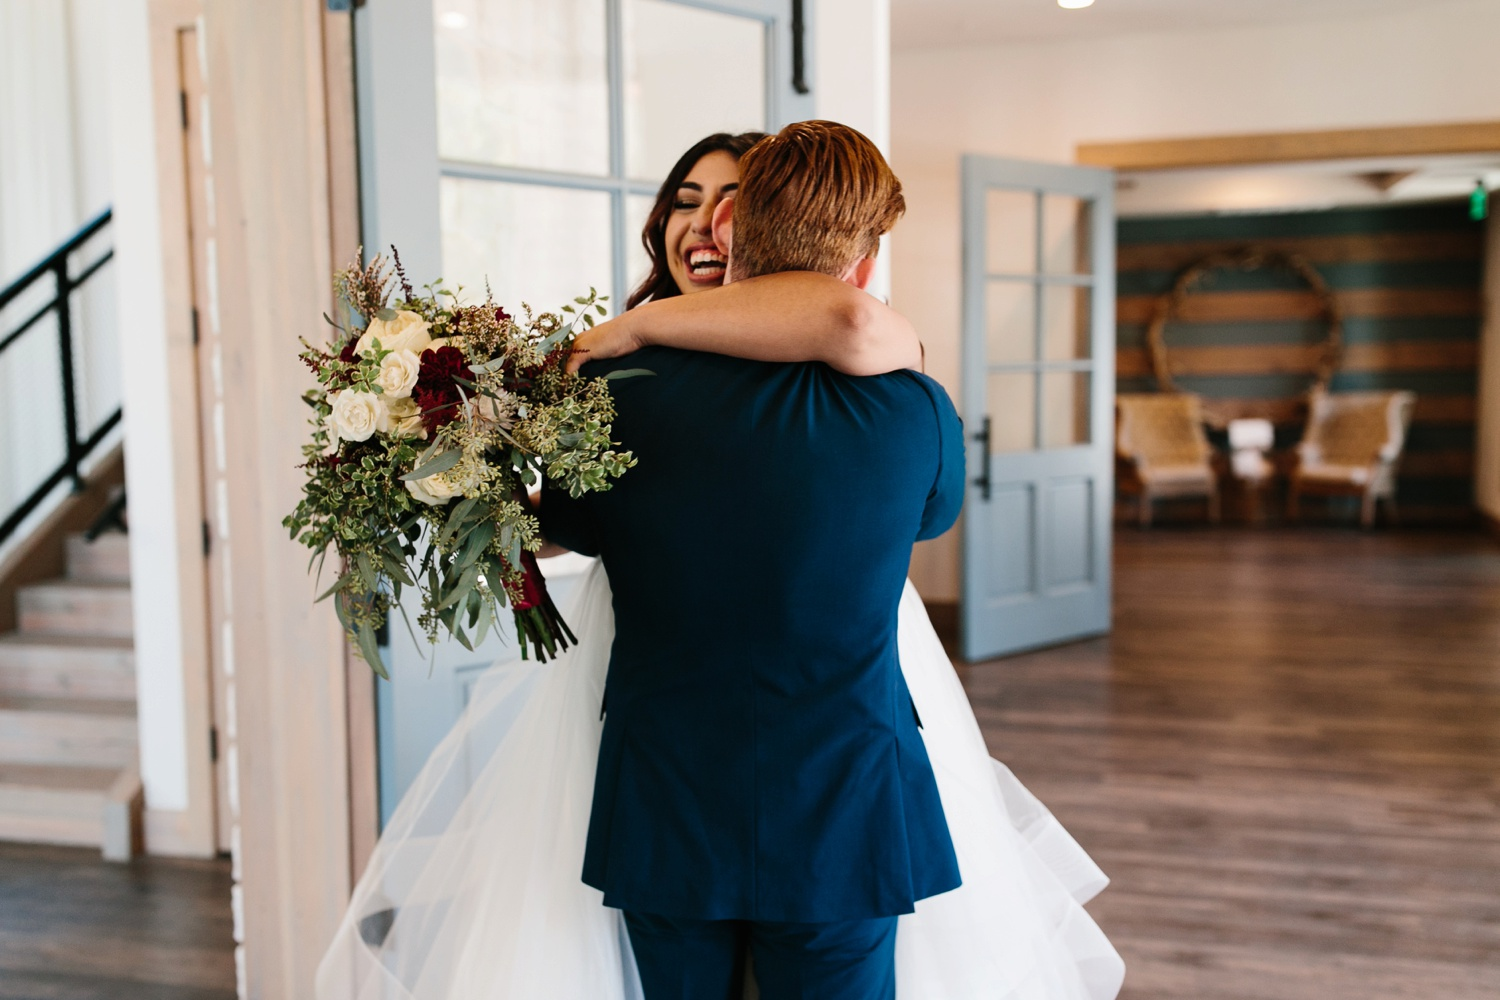 Grant + Lysette | a vibrant, deep burgundy and navy, and mixed metals wedding at Hidden Pines Chapel by North Texas Wedding Photographer Rachel Meagan Photography 112